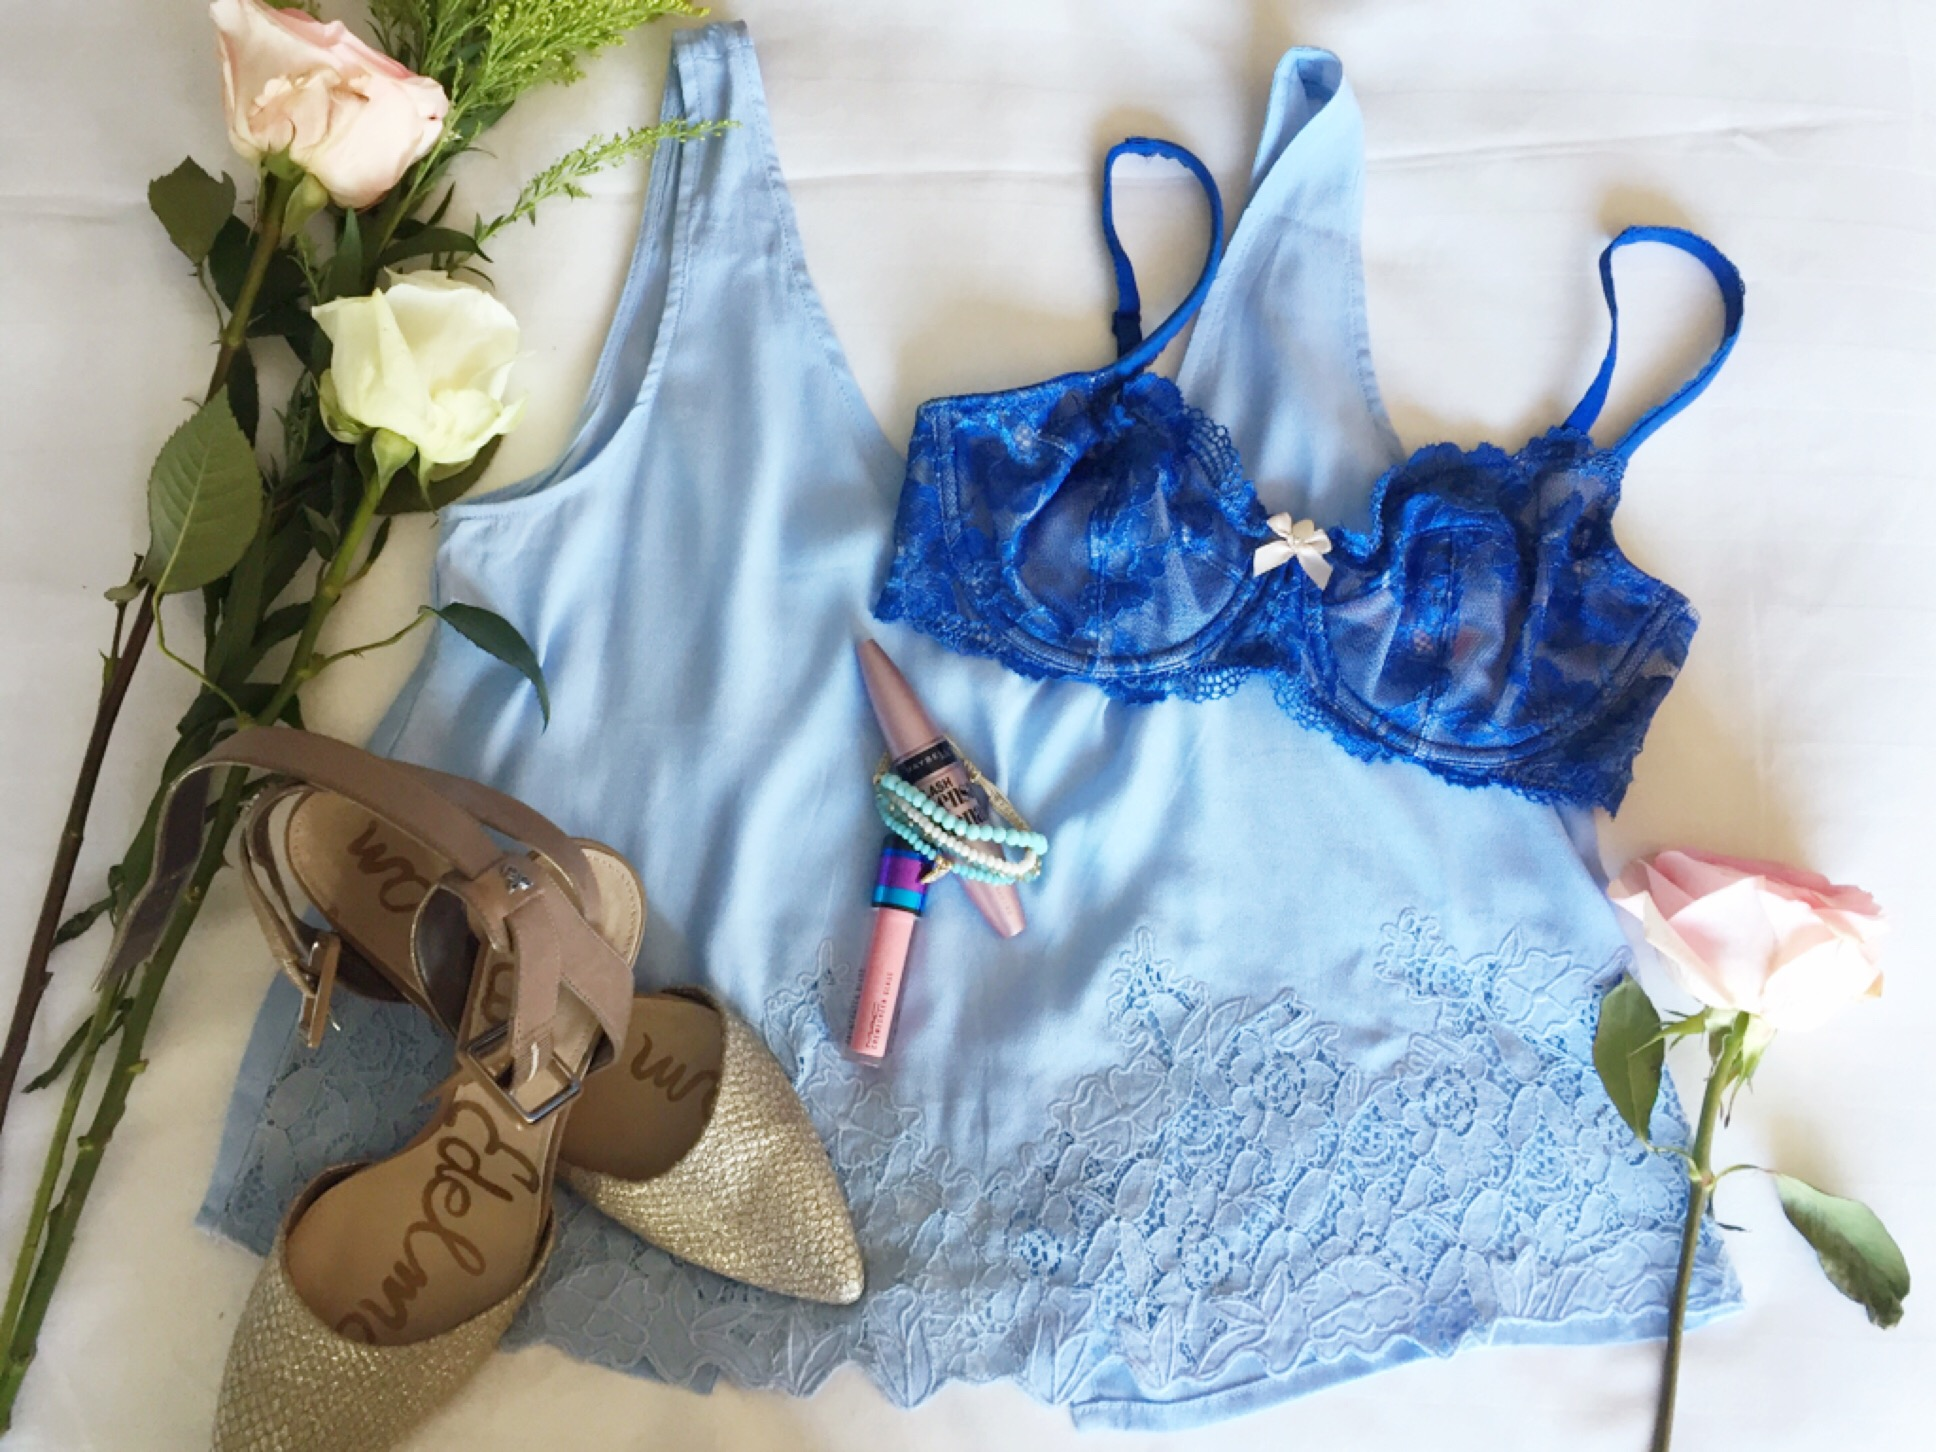 Sexy Summer Lingerie Flat Lay Roses